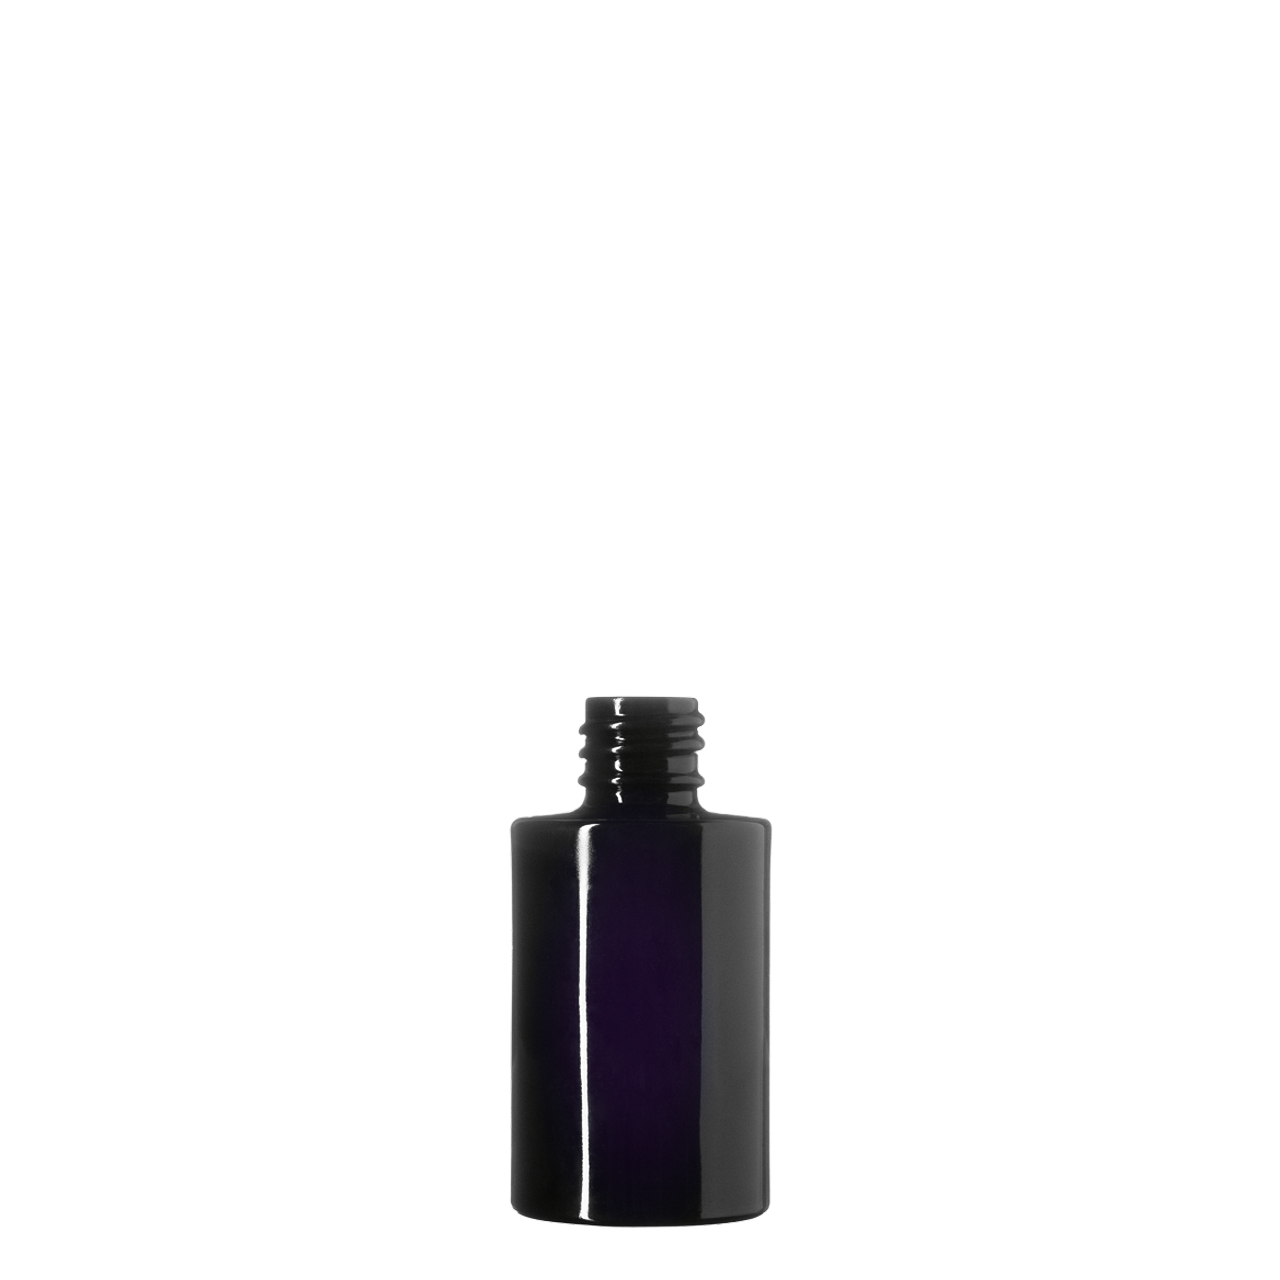 Cosmetic bottle Virgo 30 ml, Miron, 18/415 thread